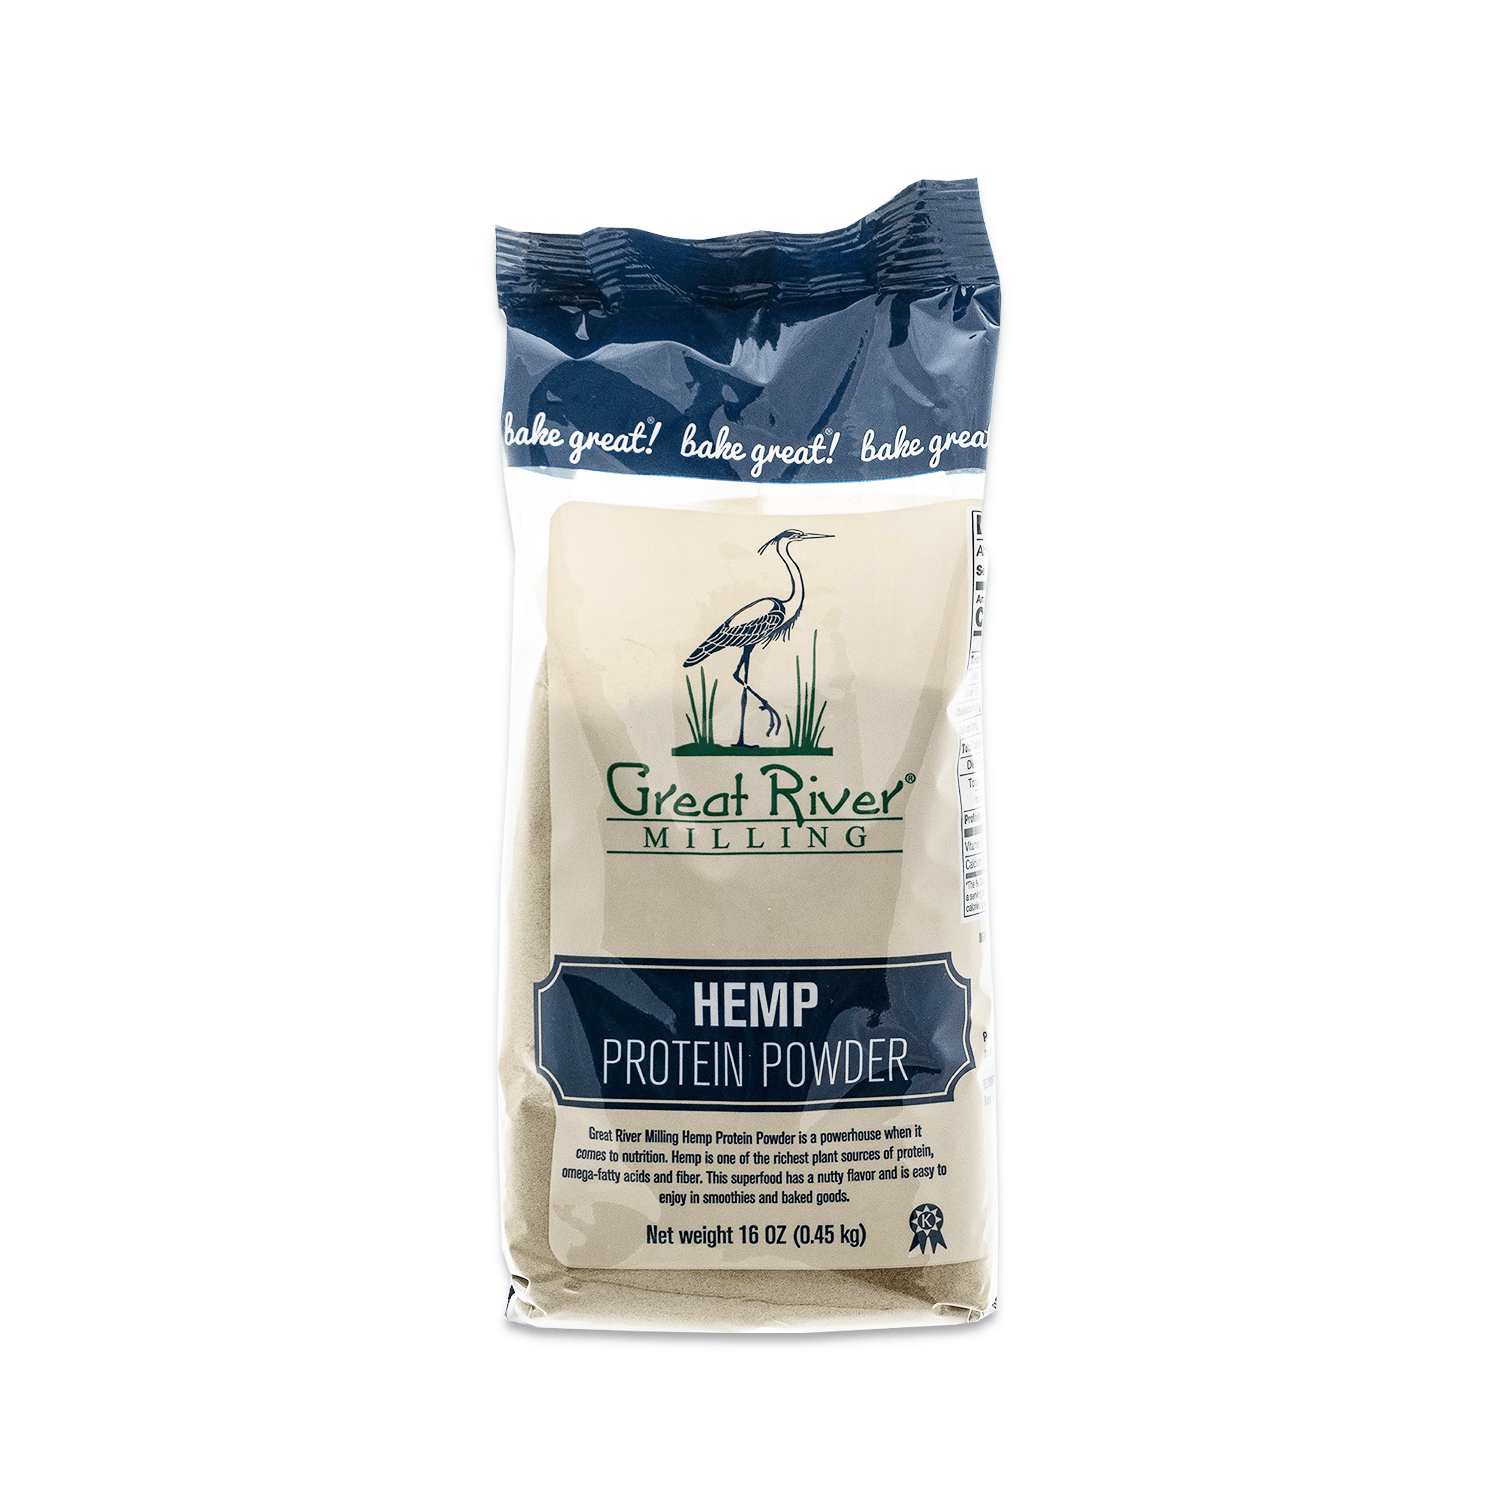 Great River Milling Hemp Protein Powder